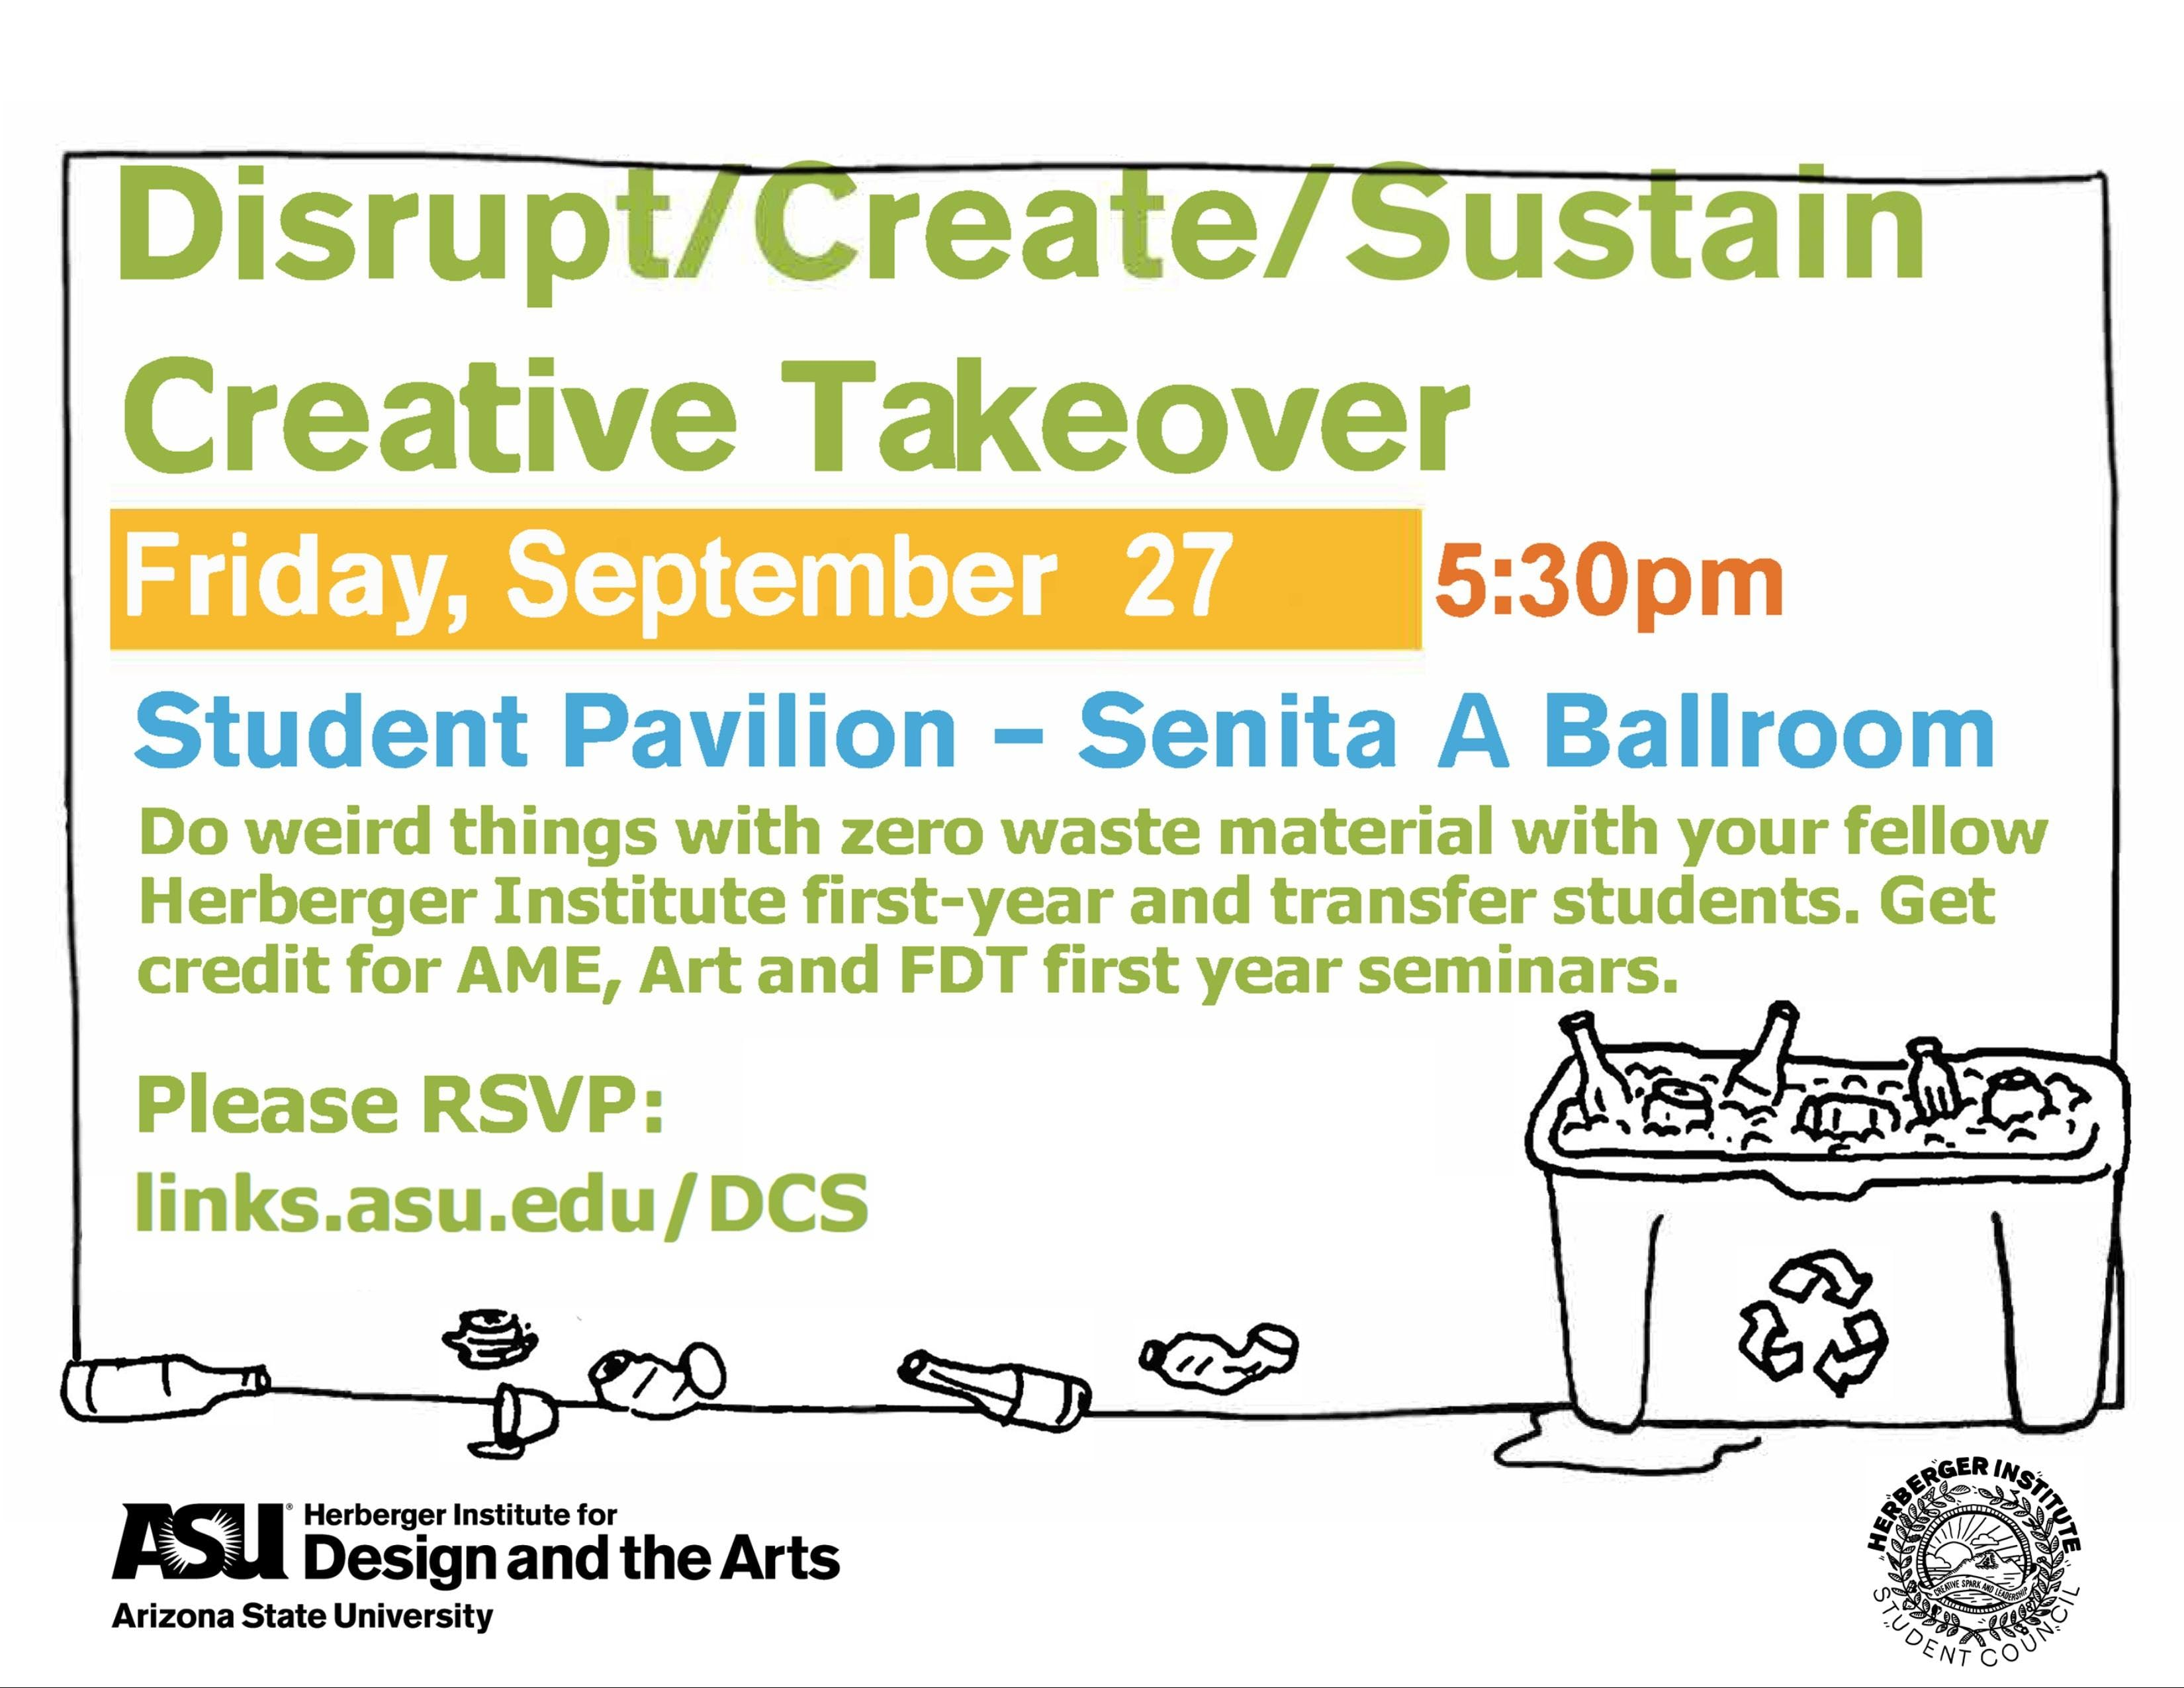 Herberger Institute Creative Takeover